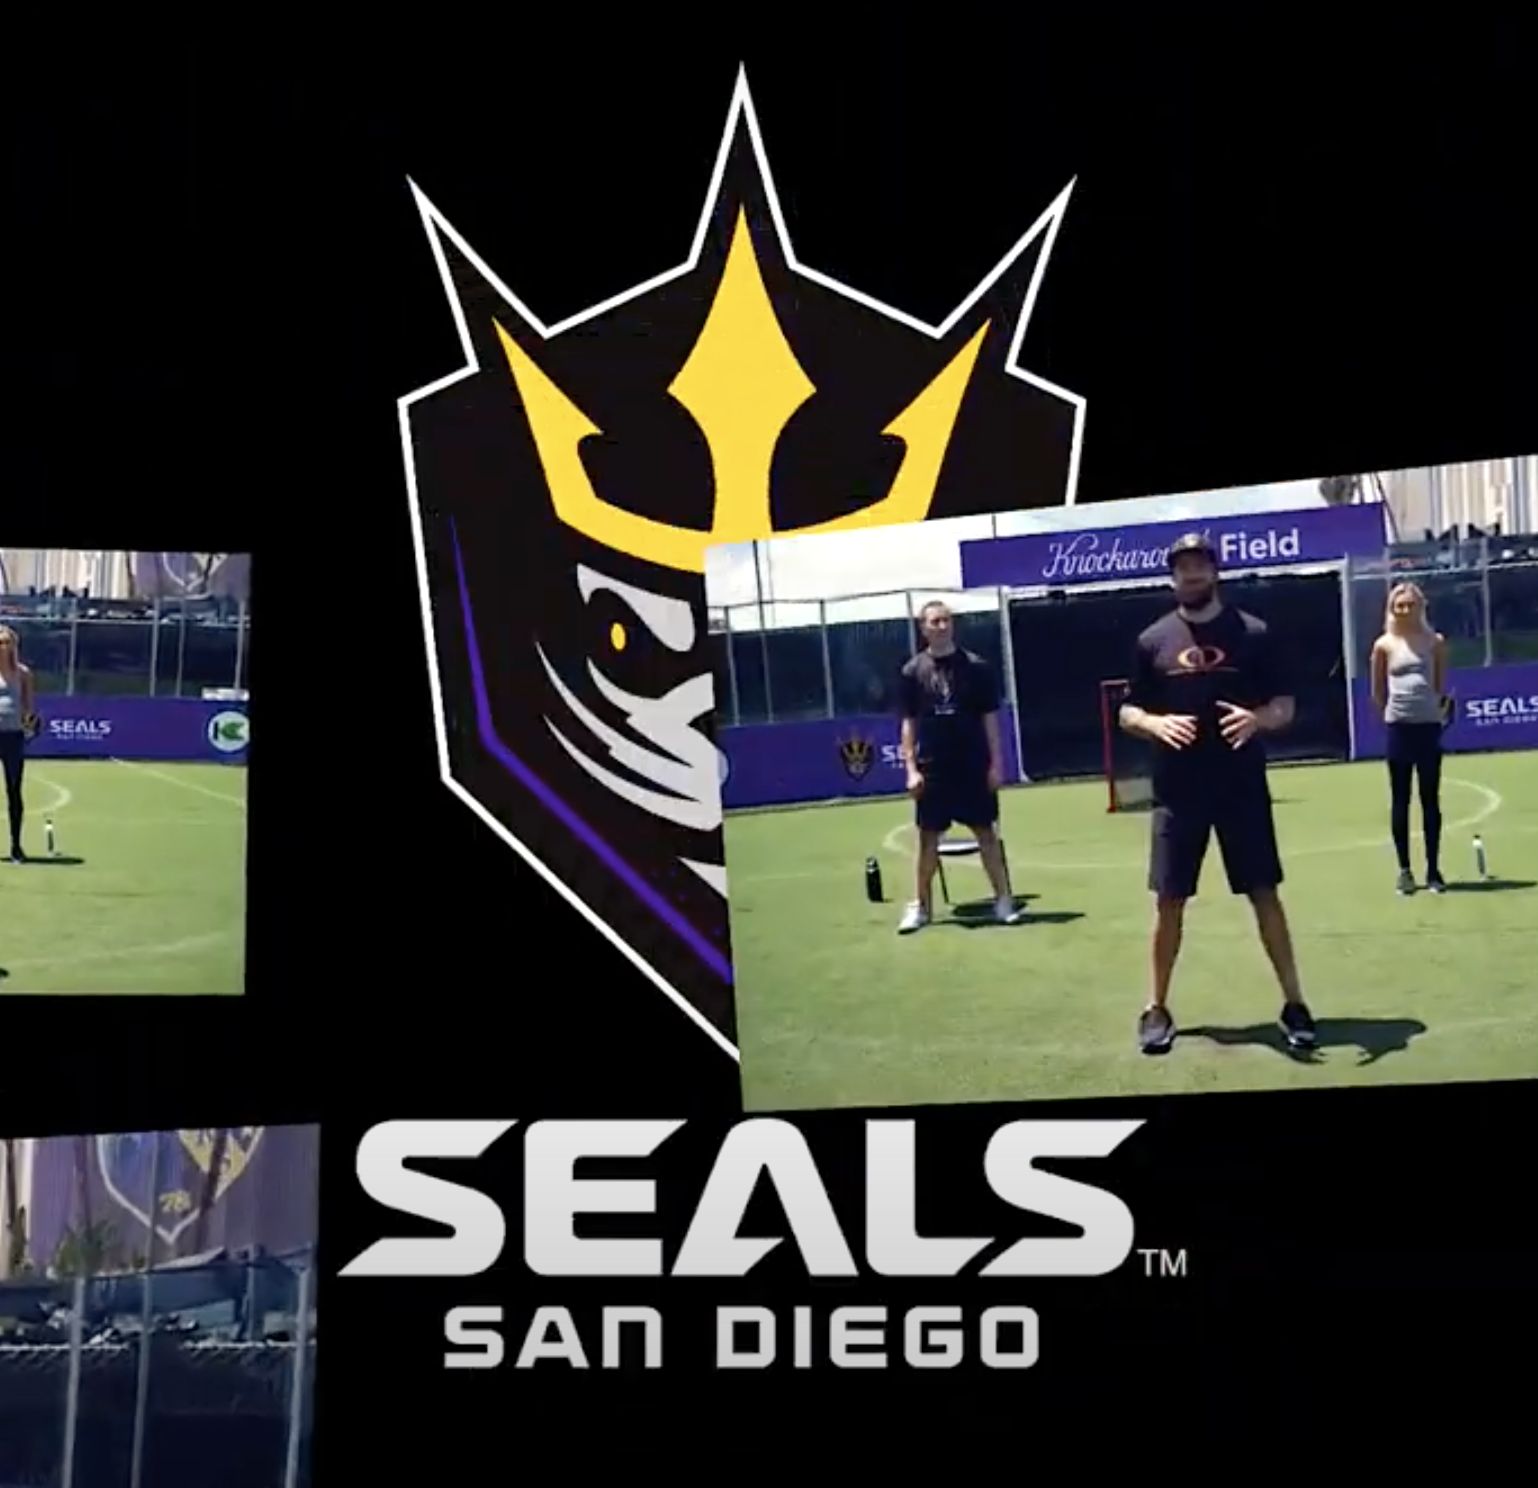 WORKOUT WITH PROFESSIONAL ATHLETES USING THESE VIDEOS FROM THE SD SEALS